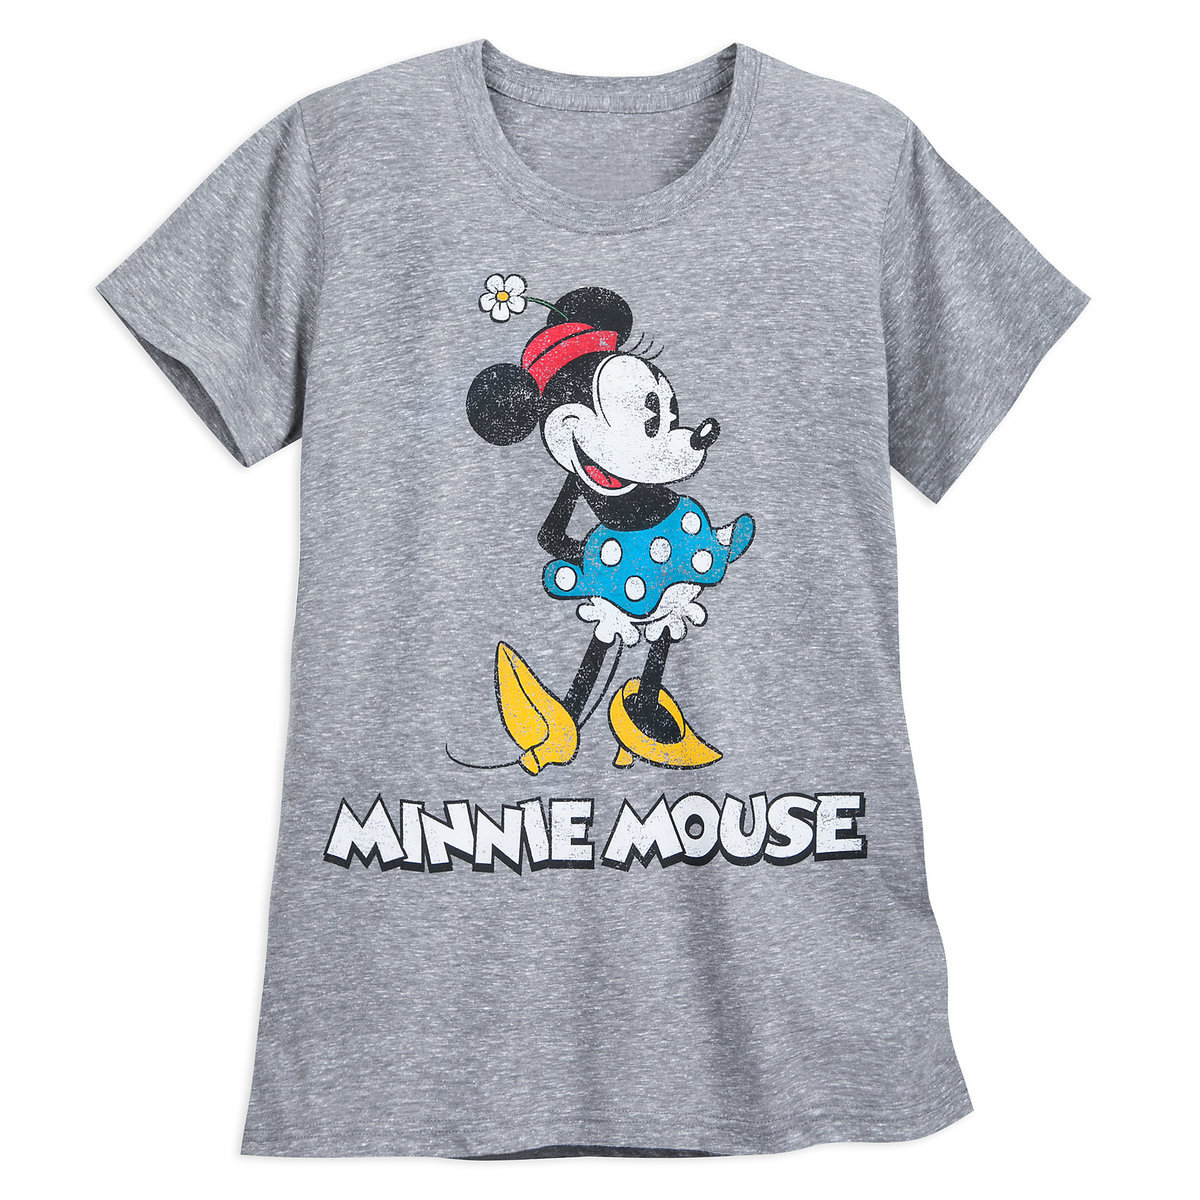 31576aed Product Image of Minnie Mouse Classic T-Shirt for Women - Gray # 1